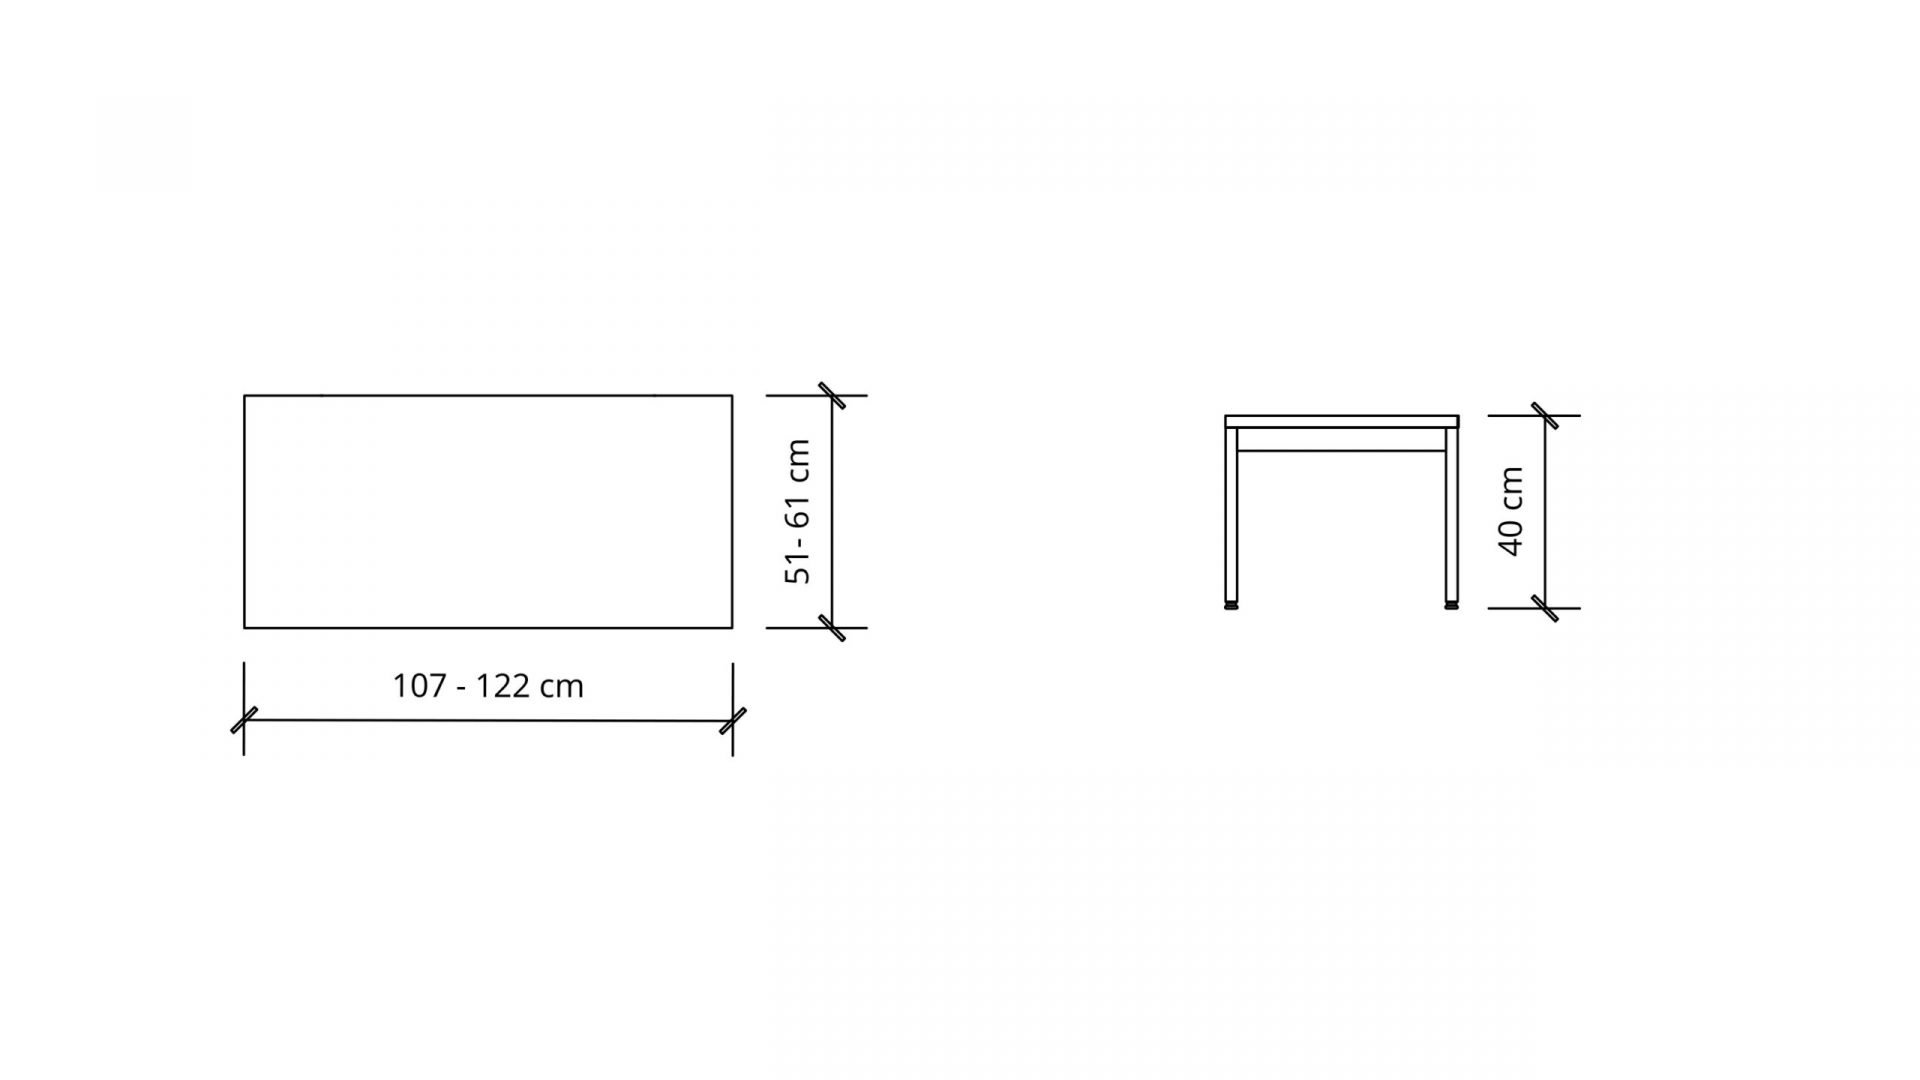 Dimensions of Rectangular Coffee Table 1659